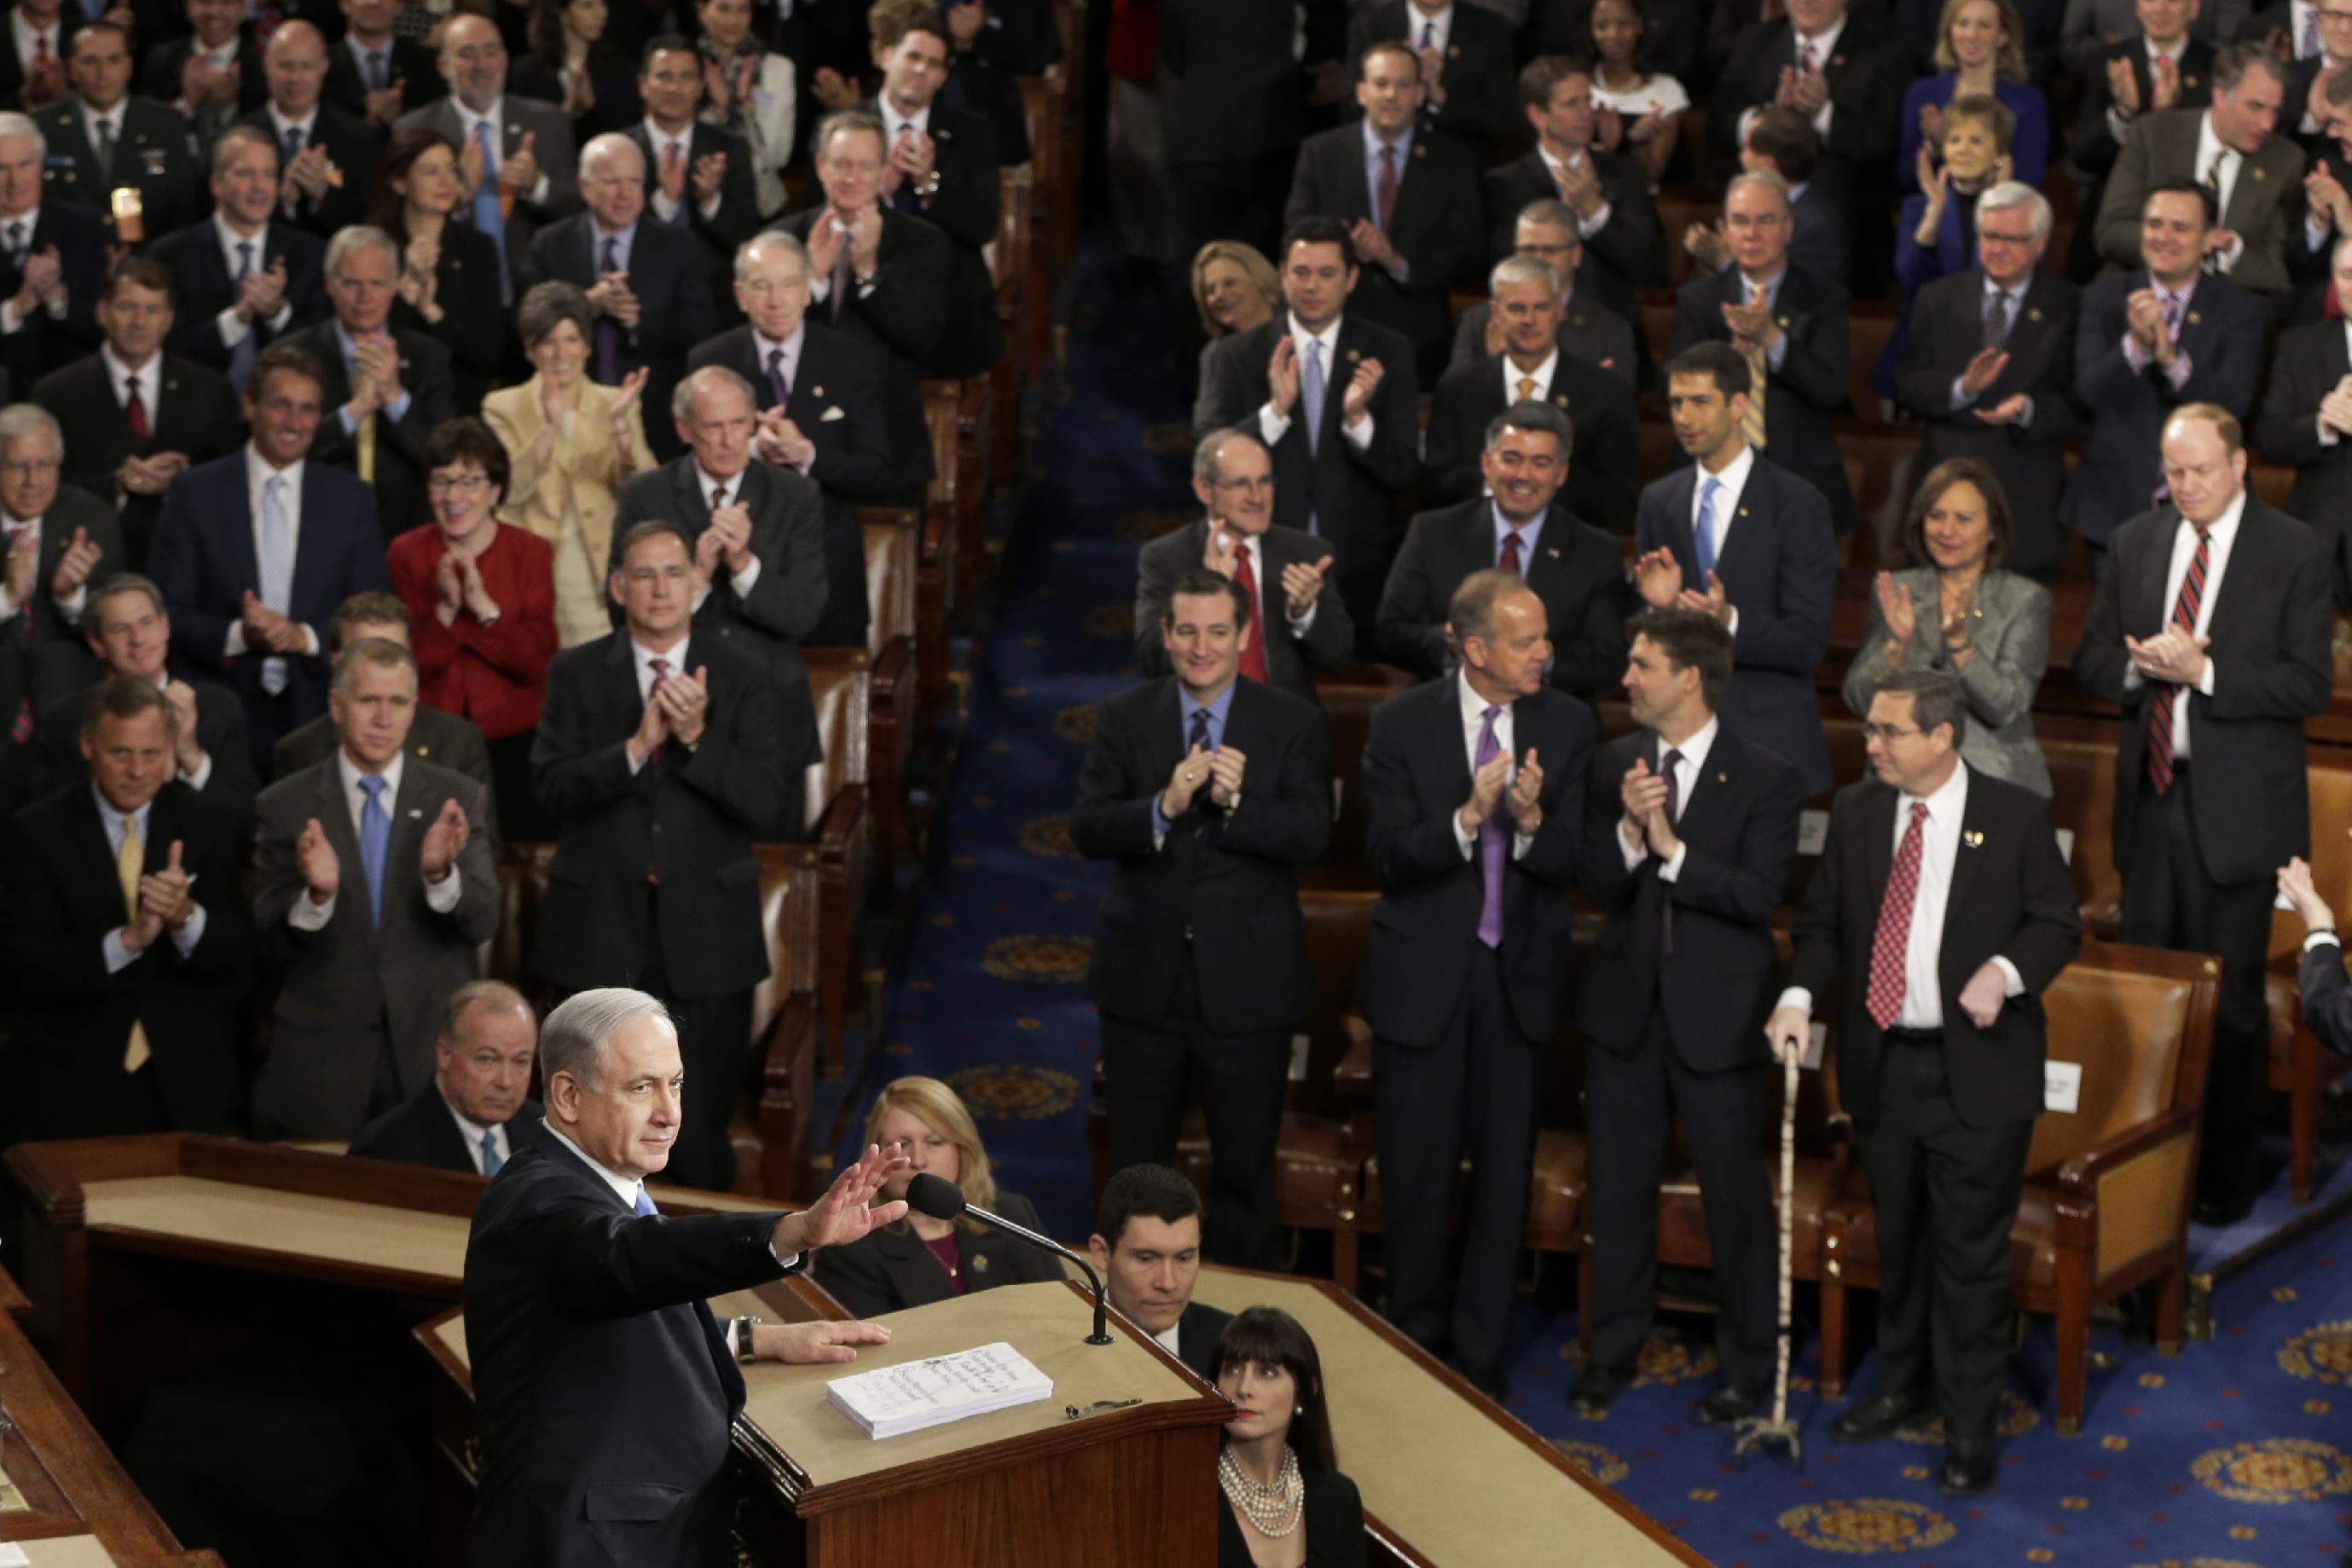 No precedent for Netanyahu's contentious speech to Congress